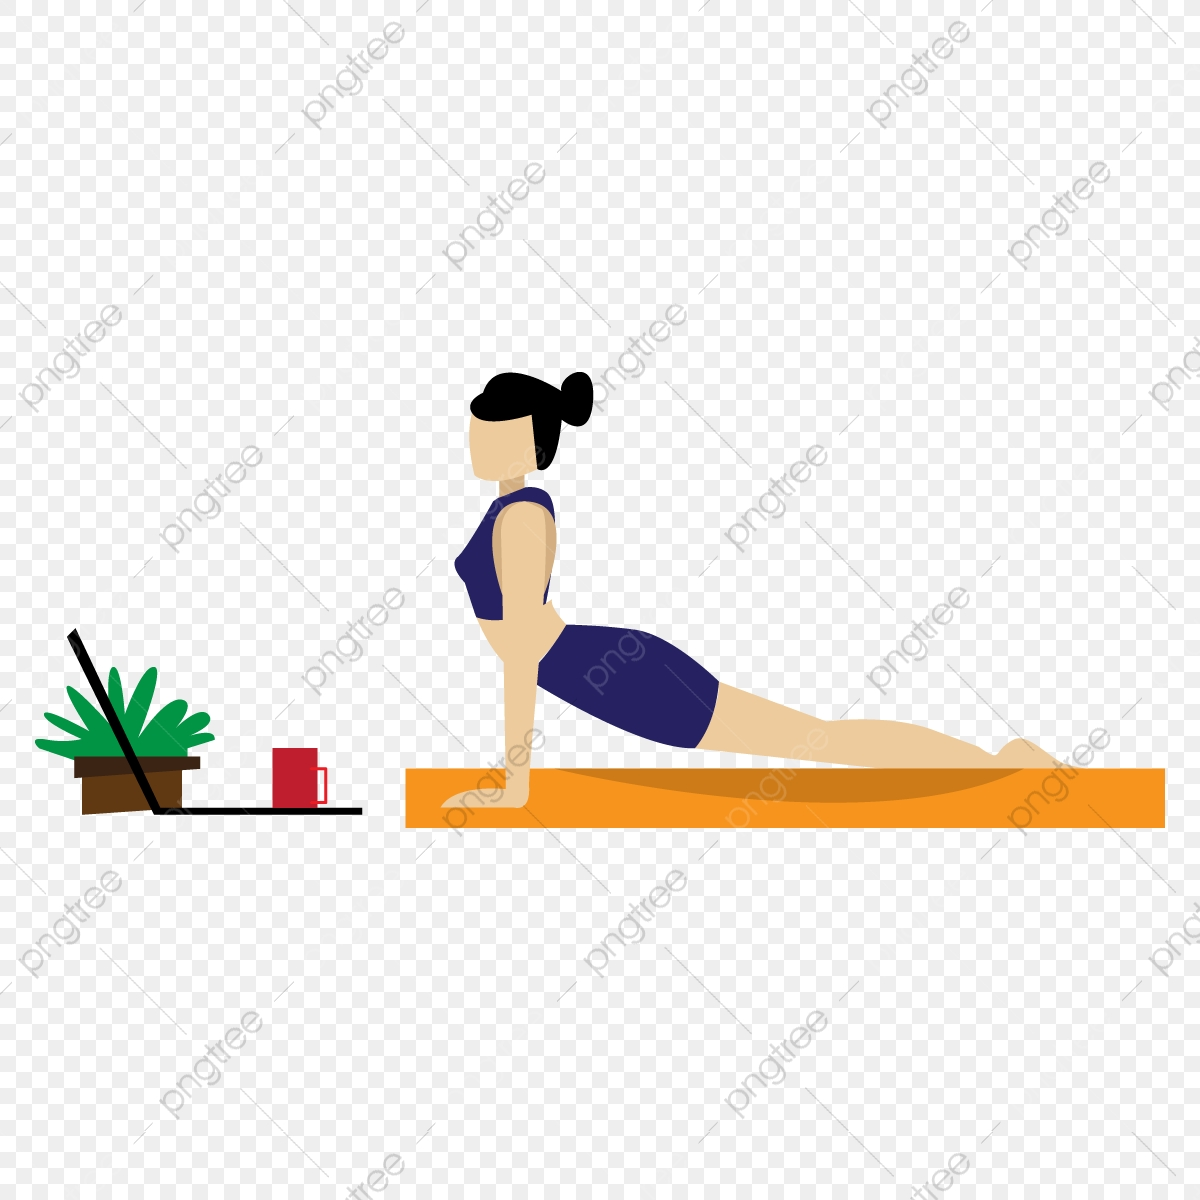 Stress Management By Yoga Stay At Home Learn Online Coronavirus 2019 Ncov Virus Stay Inside Png And Vector With Transparent Background For Free Download